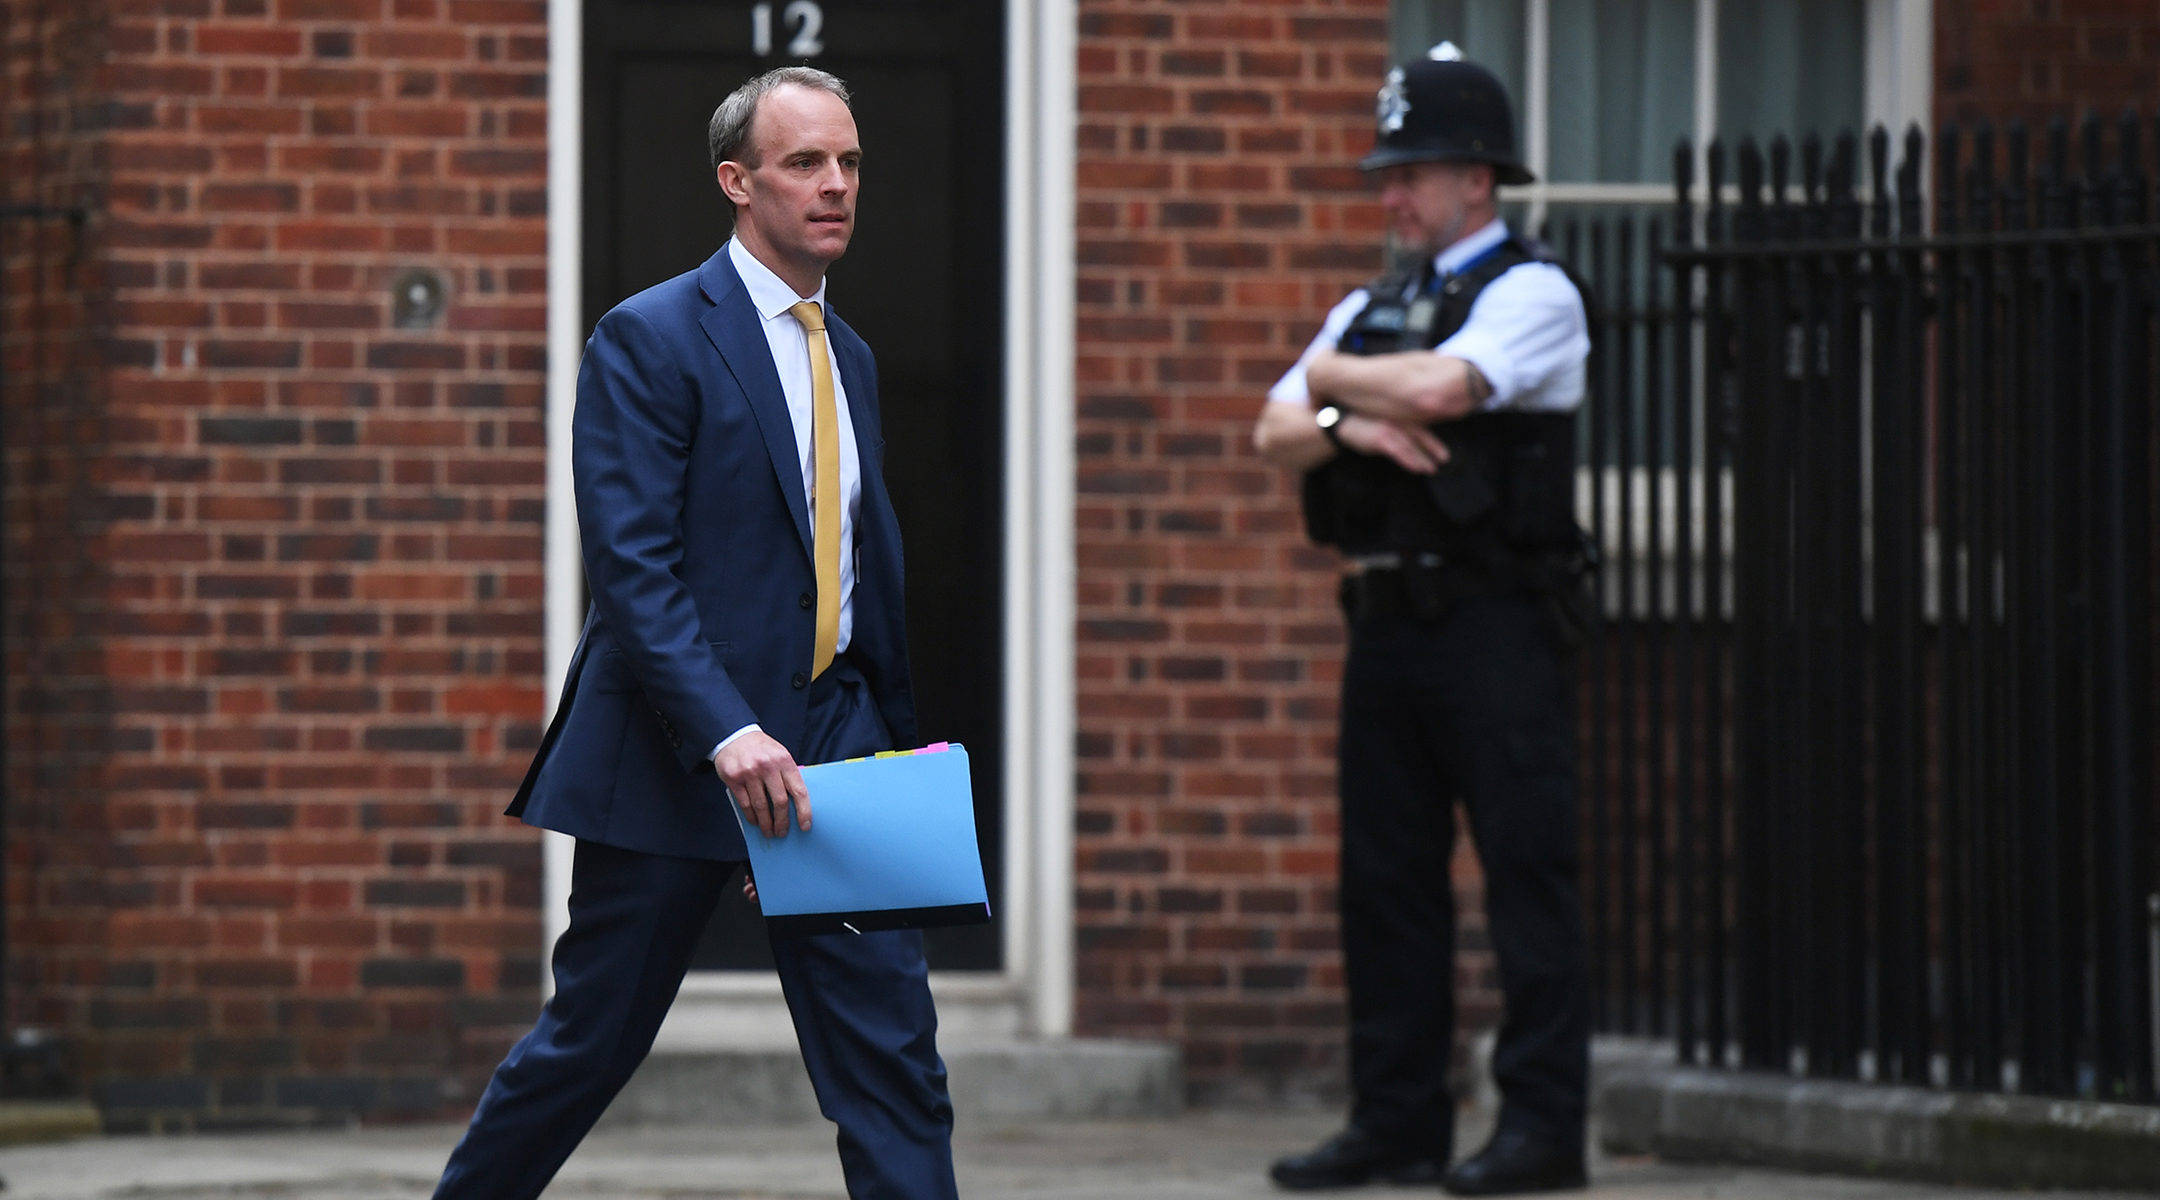 British Secretary of State Dominic Raab arriving to a briefing about the coronavirus at prime minister's residence on Downing Street 10, London, the United Kingdon on April 7, 2020. (Chris J Ratcliffe/Getty Images)